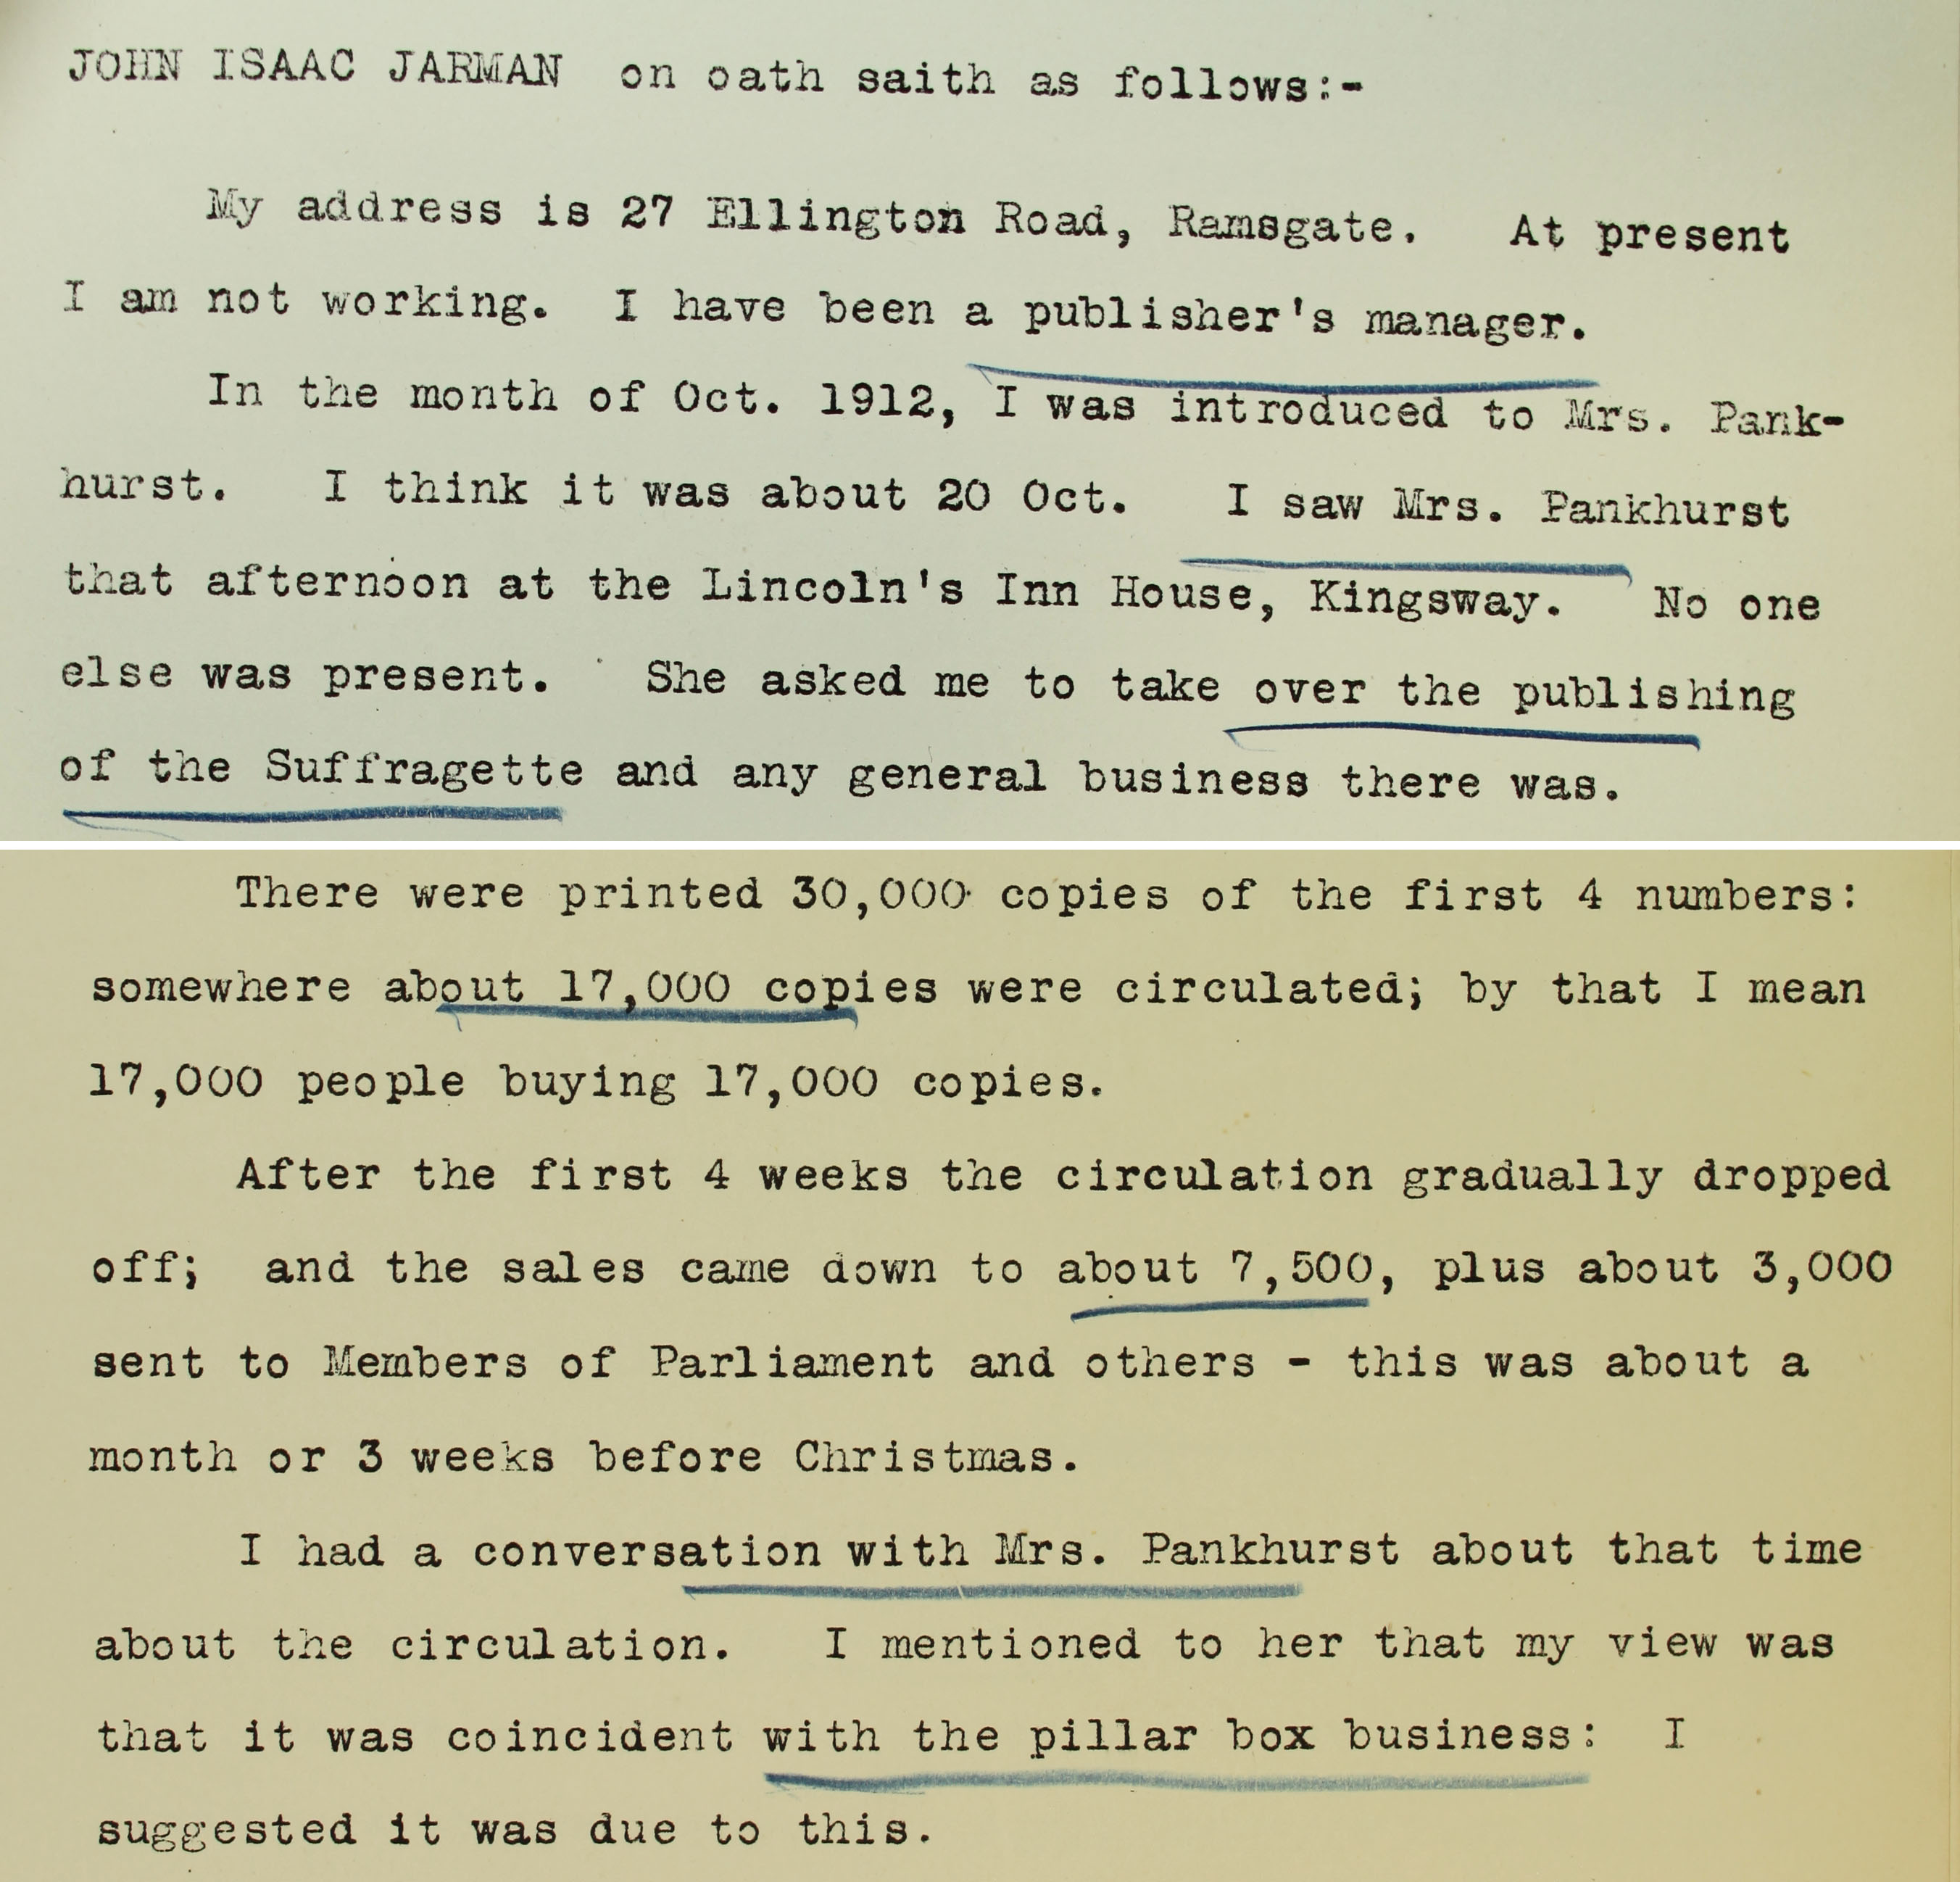 Circulation: the Suffragette - The National Archives